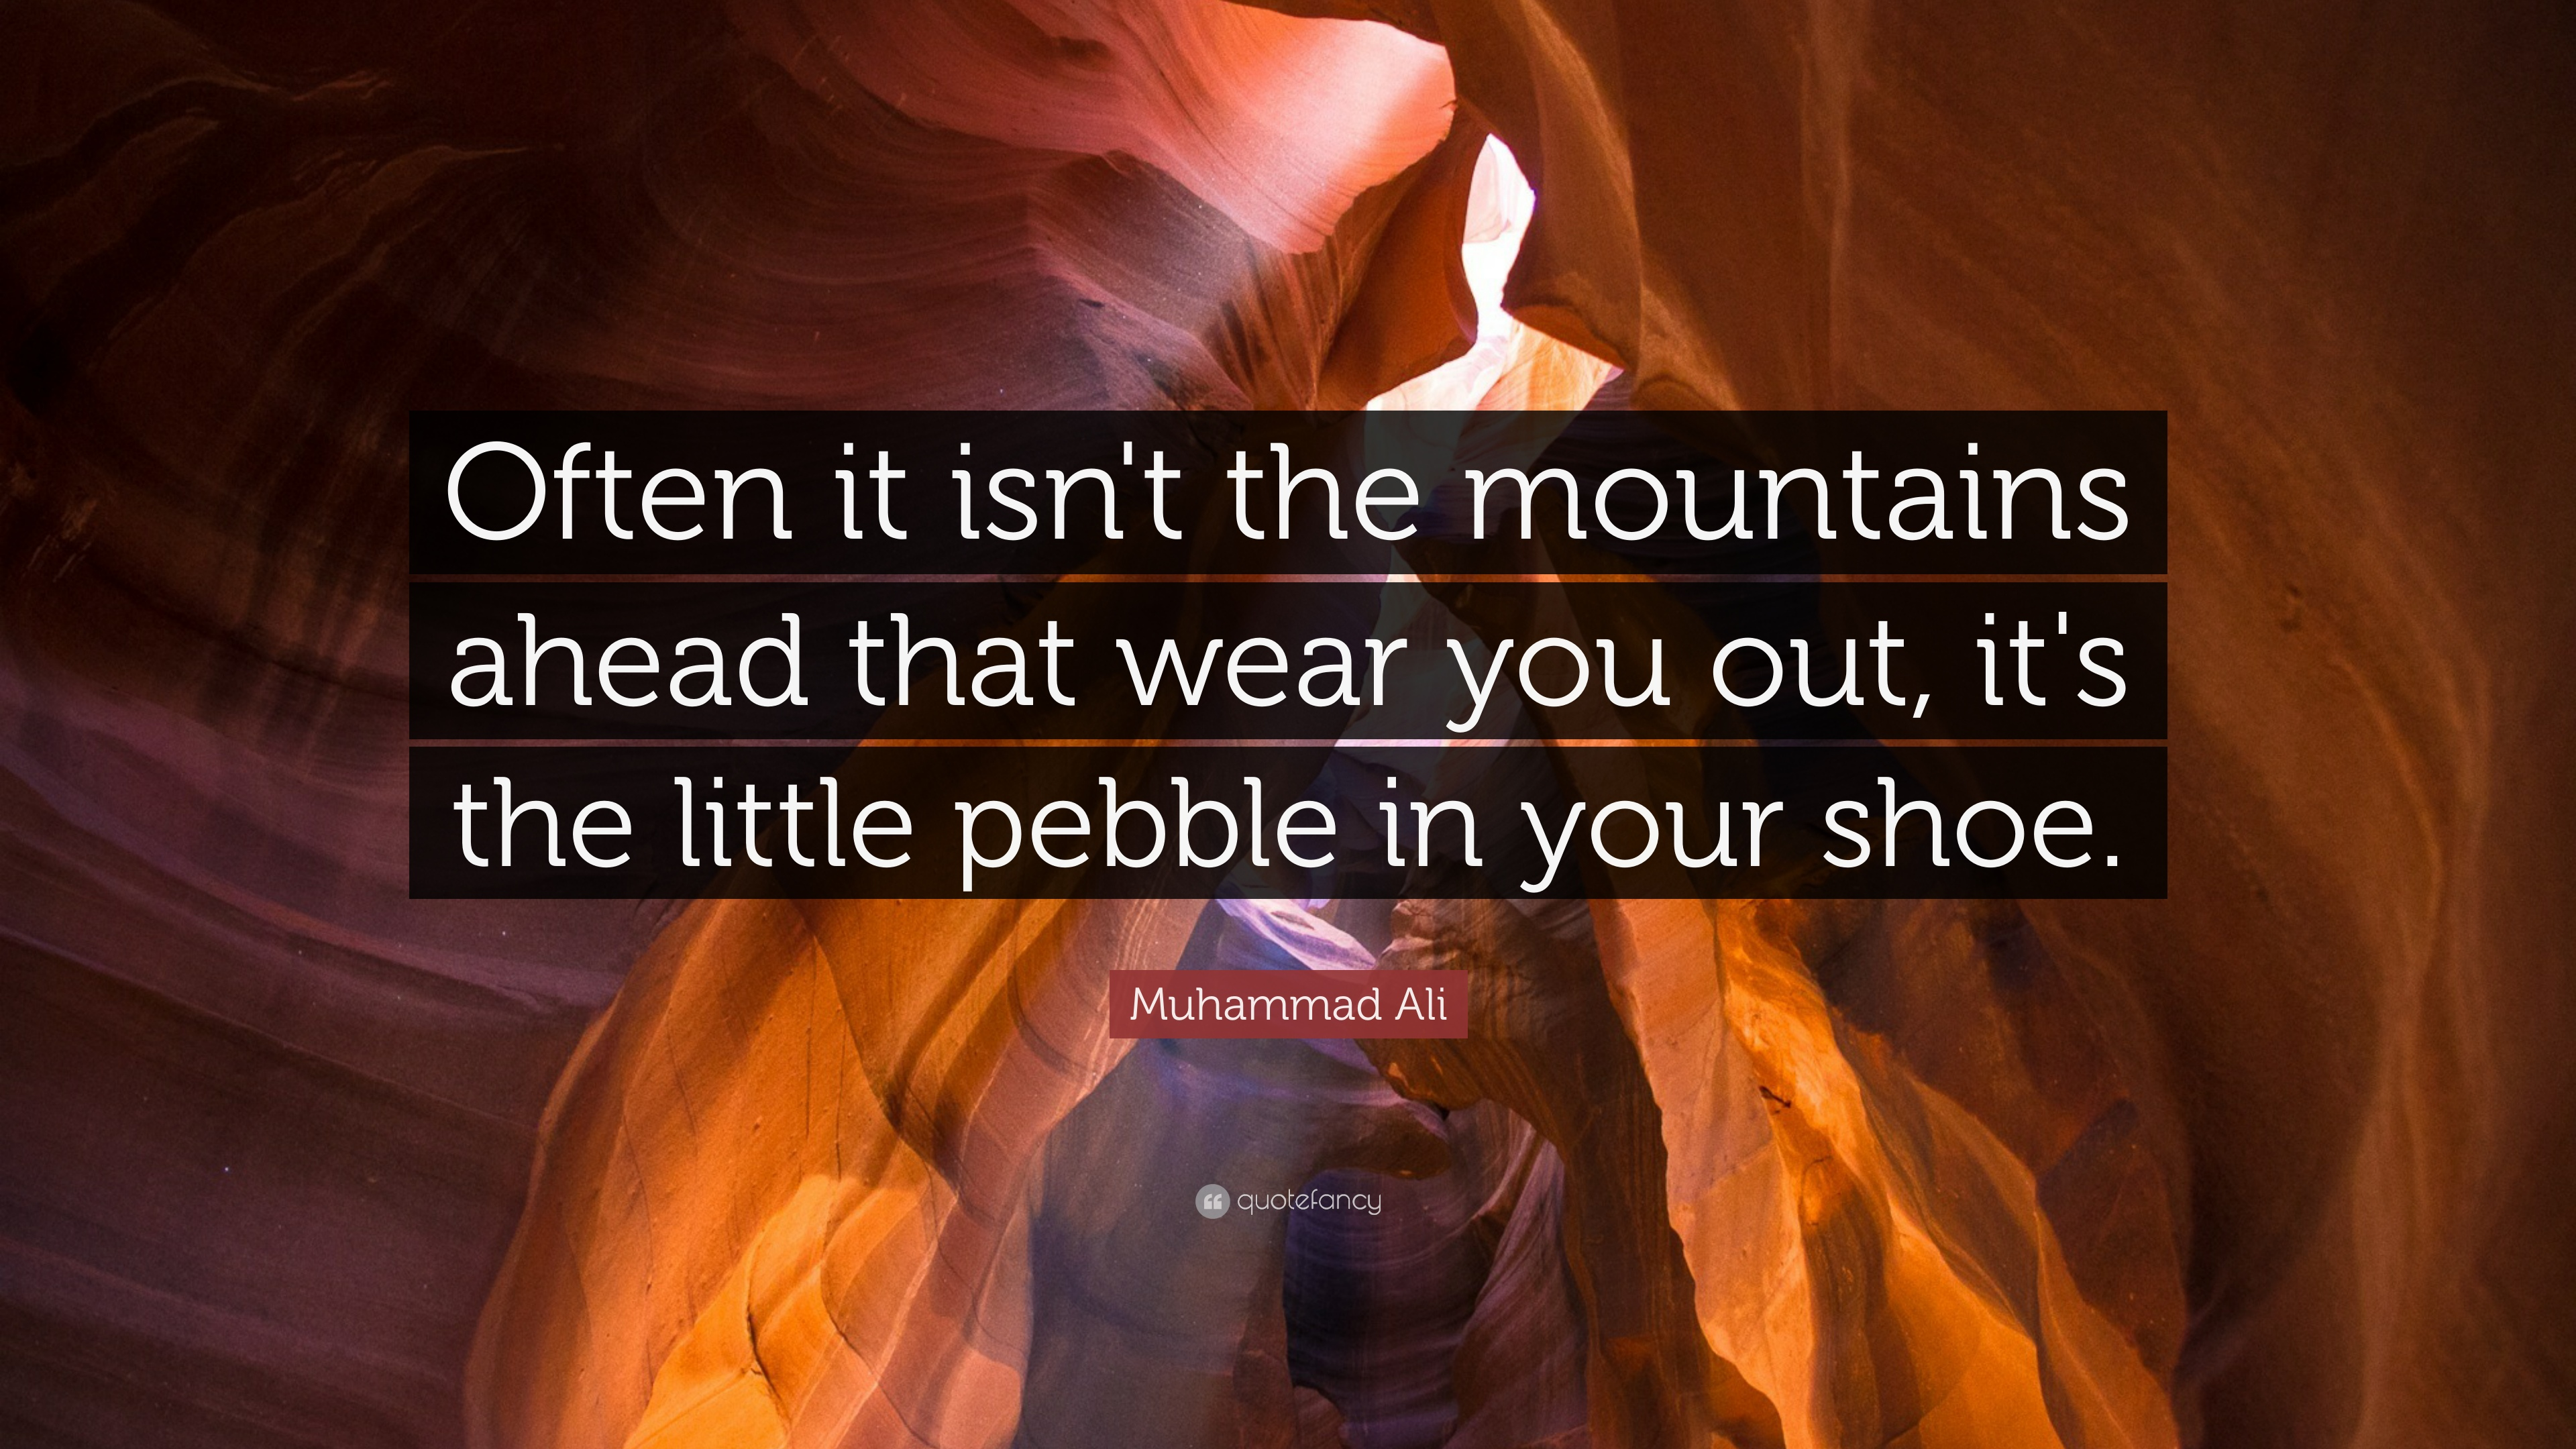 Muhammad Ali Pebble in Your Shoe Quotes